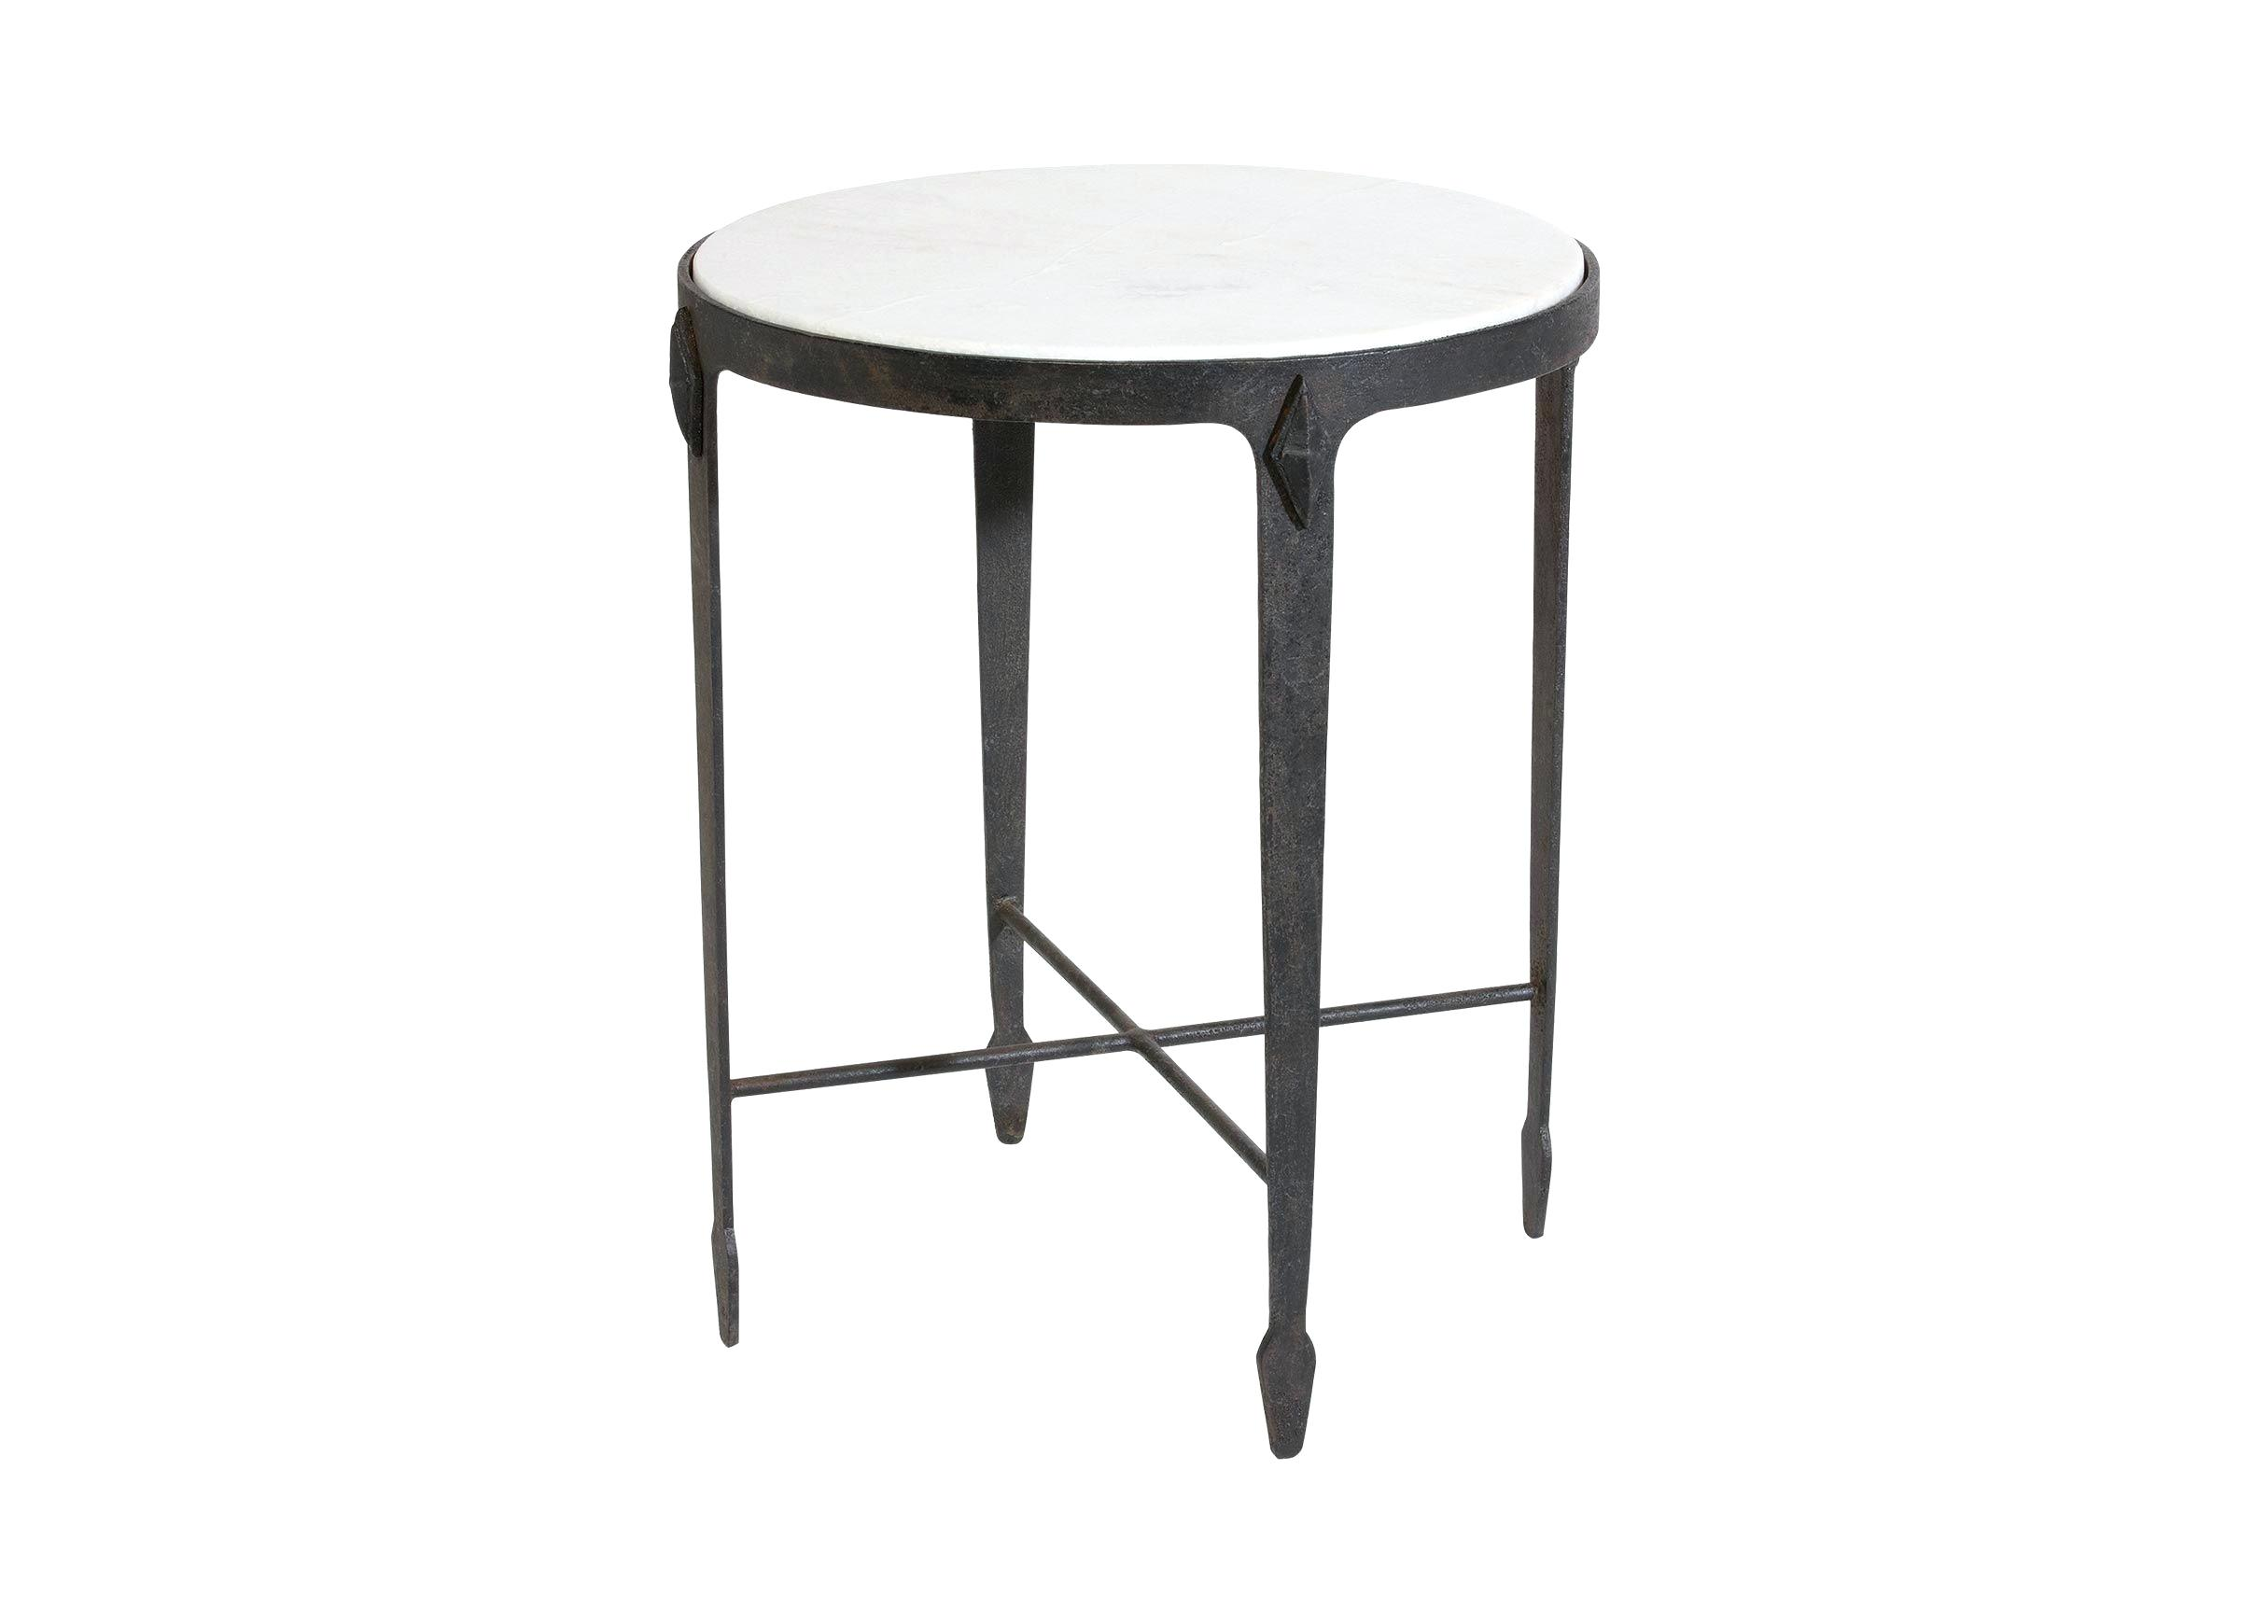 marble top accent table small hepsy contemporary furniture designers frame side round glass nesting tables yellow velvet chair tall cabinet white corner end inch tablecloth